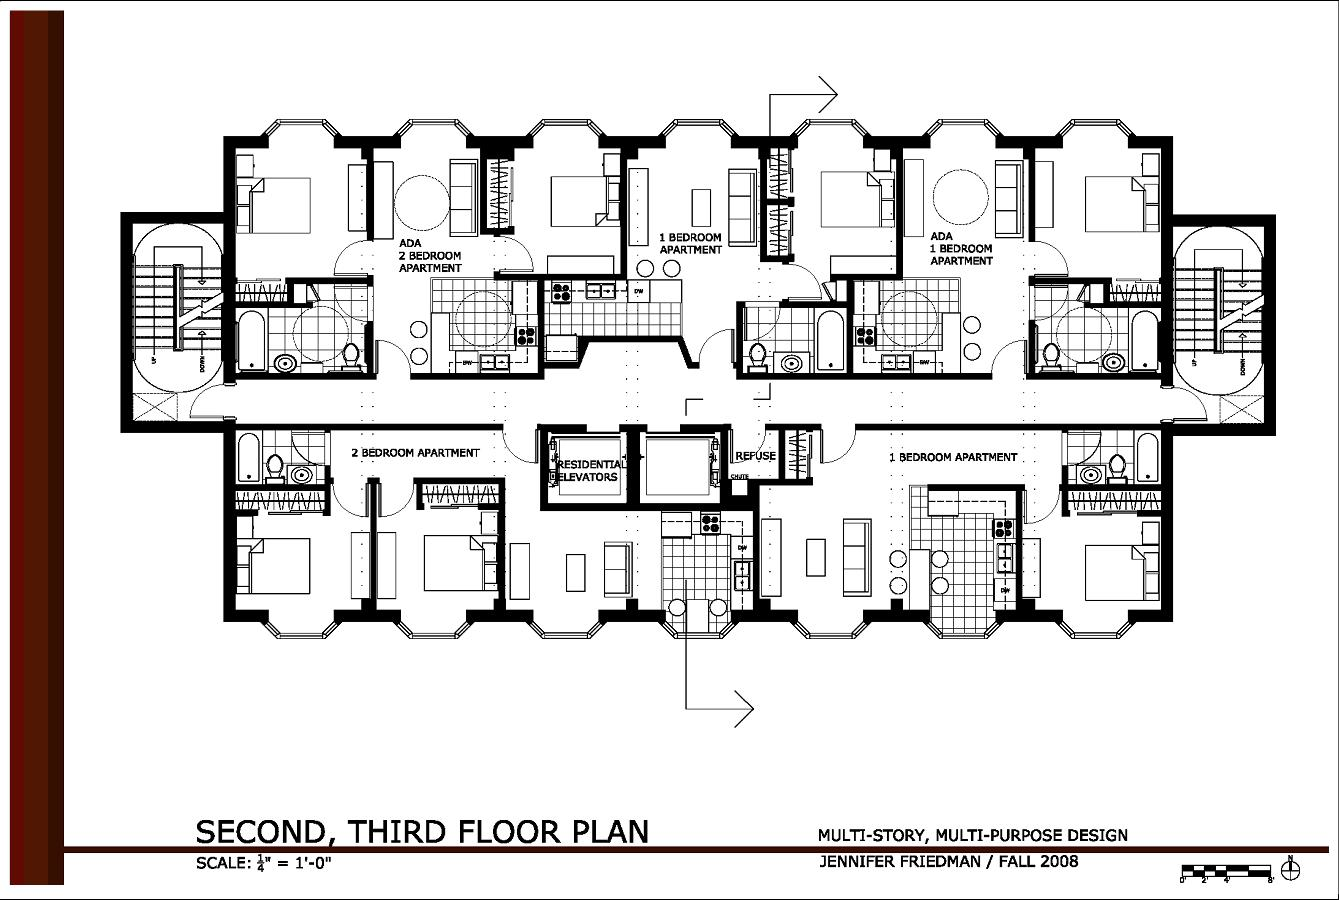 Multi story multi purpose design by jennifer friedman at for 2 story commercial building plans